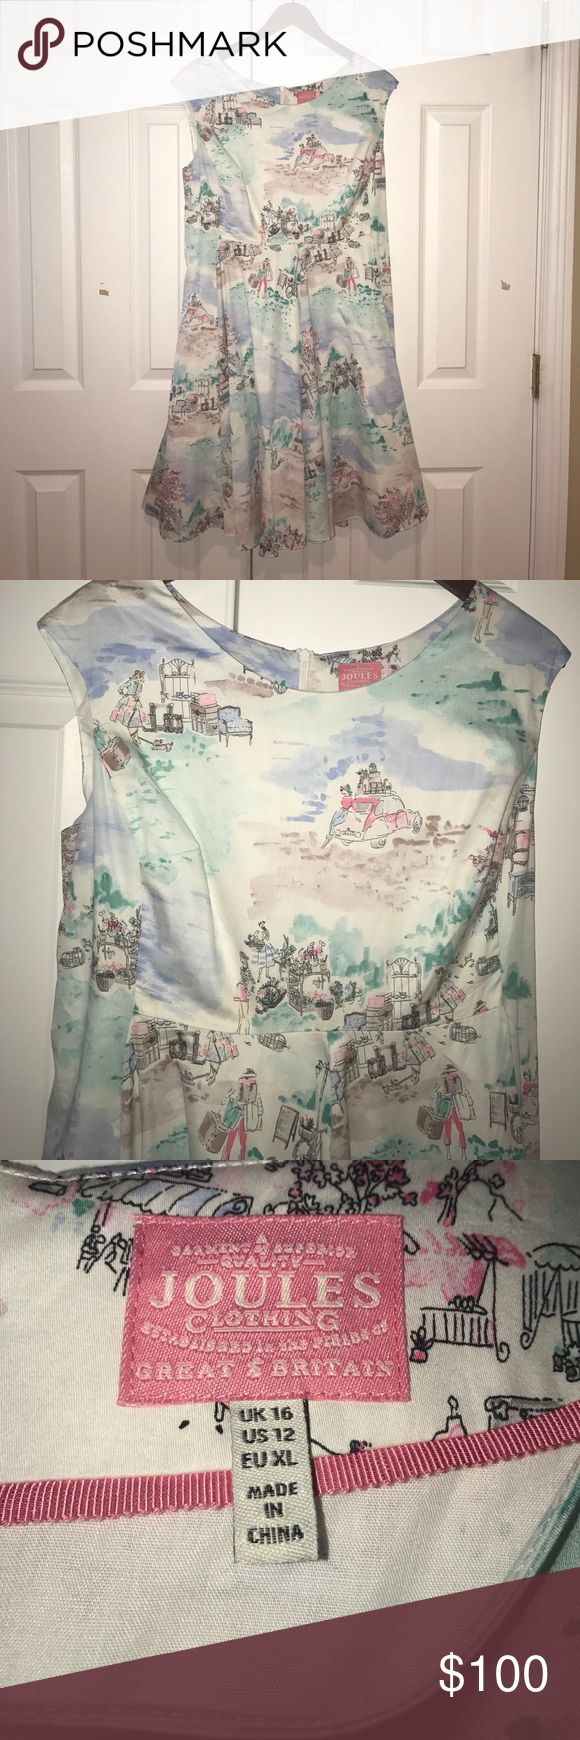 Gorgeous, summery Joules dress Size 12 Joules Clothing (Great Britain) dress. Light and airy dress is perfect for summer! Fun watercolor-inspired design. Wide shoulder straps (about 4 inches). Never worn, NWOT. Joules Dresses Midi